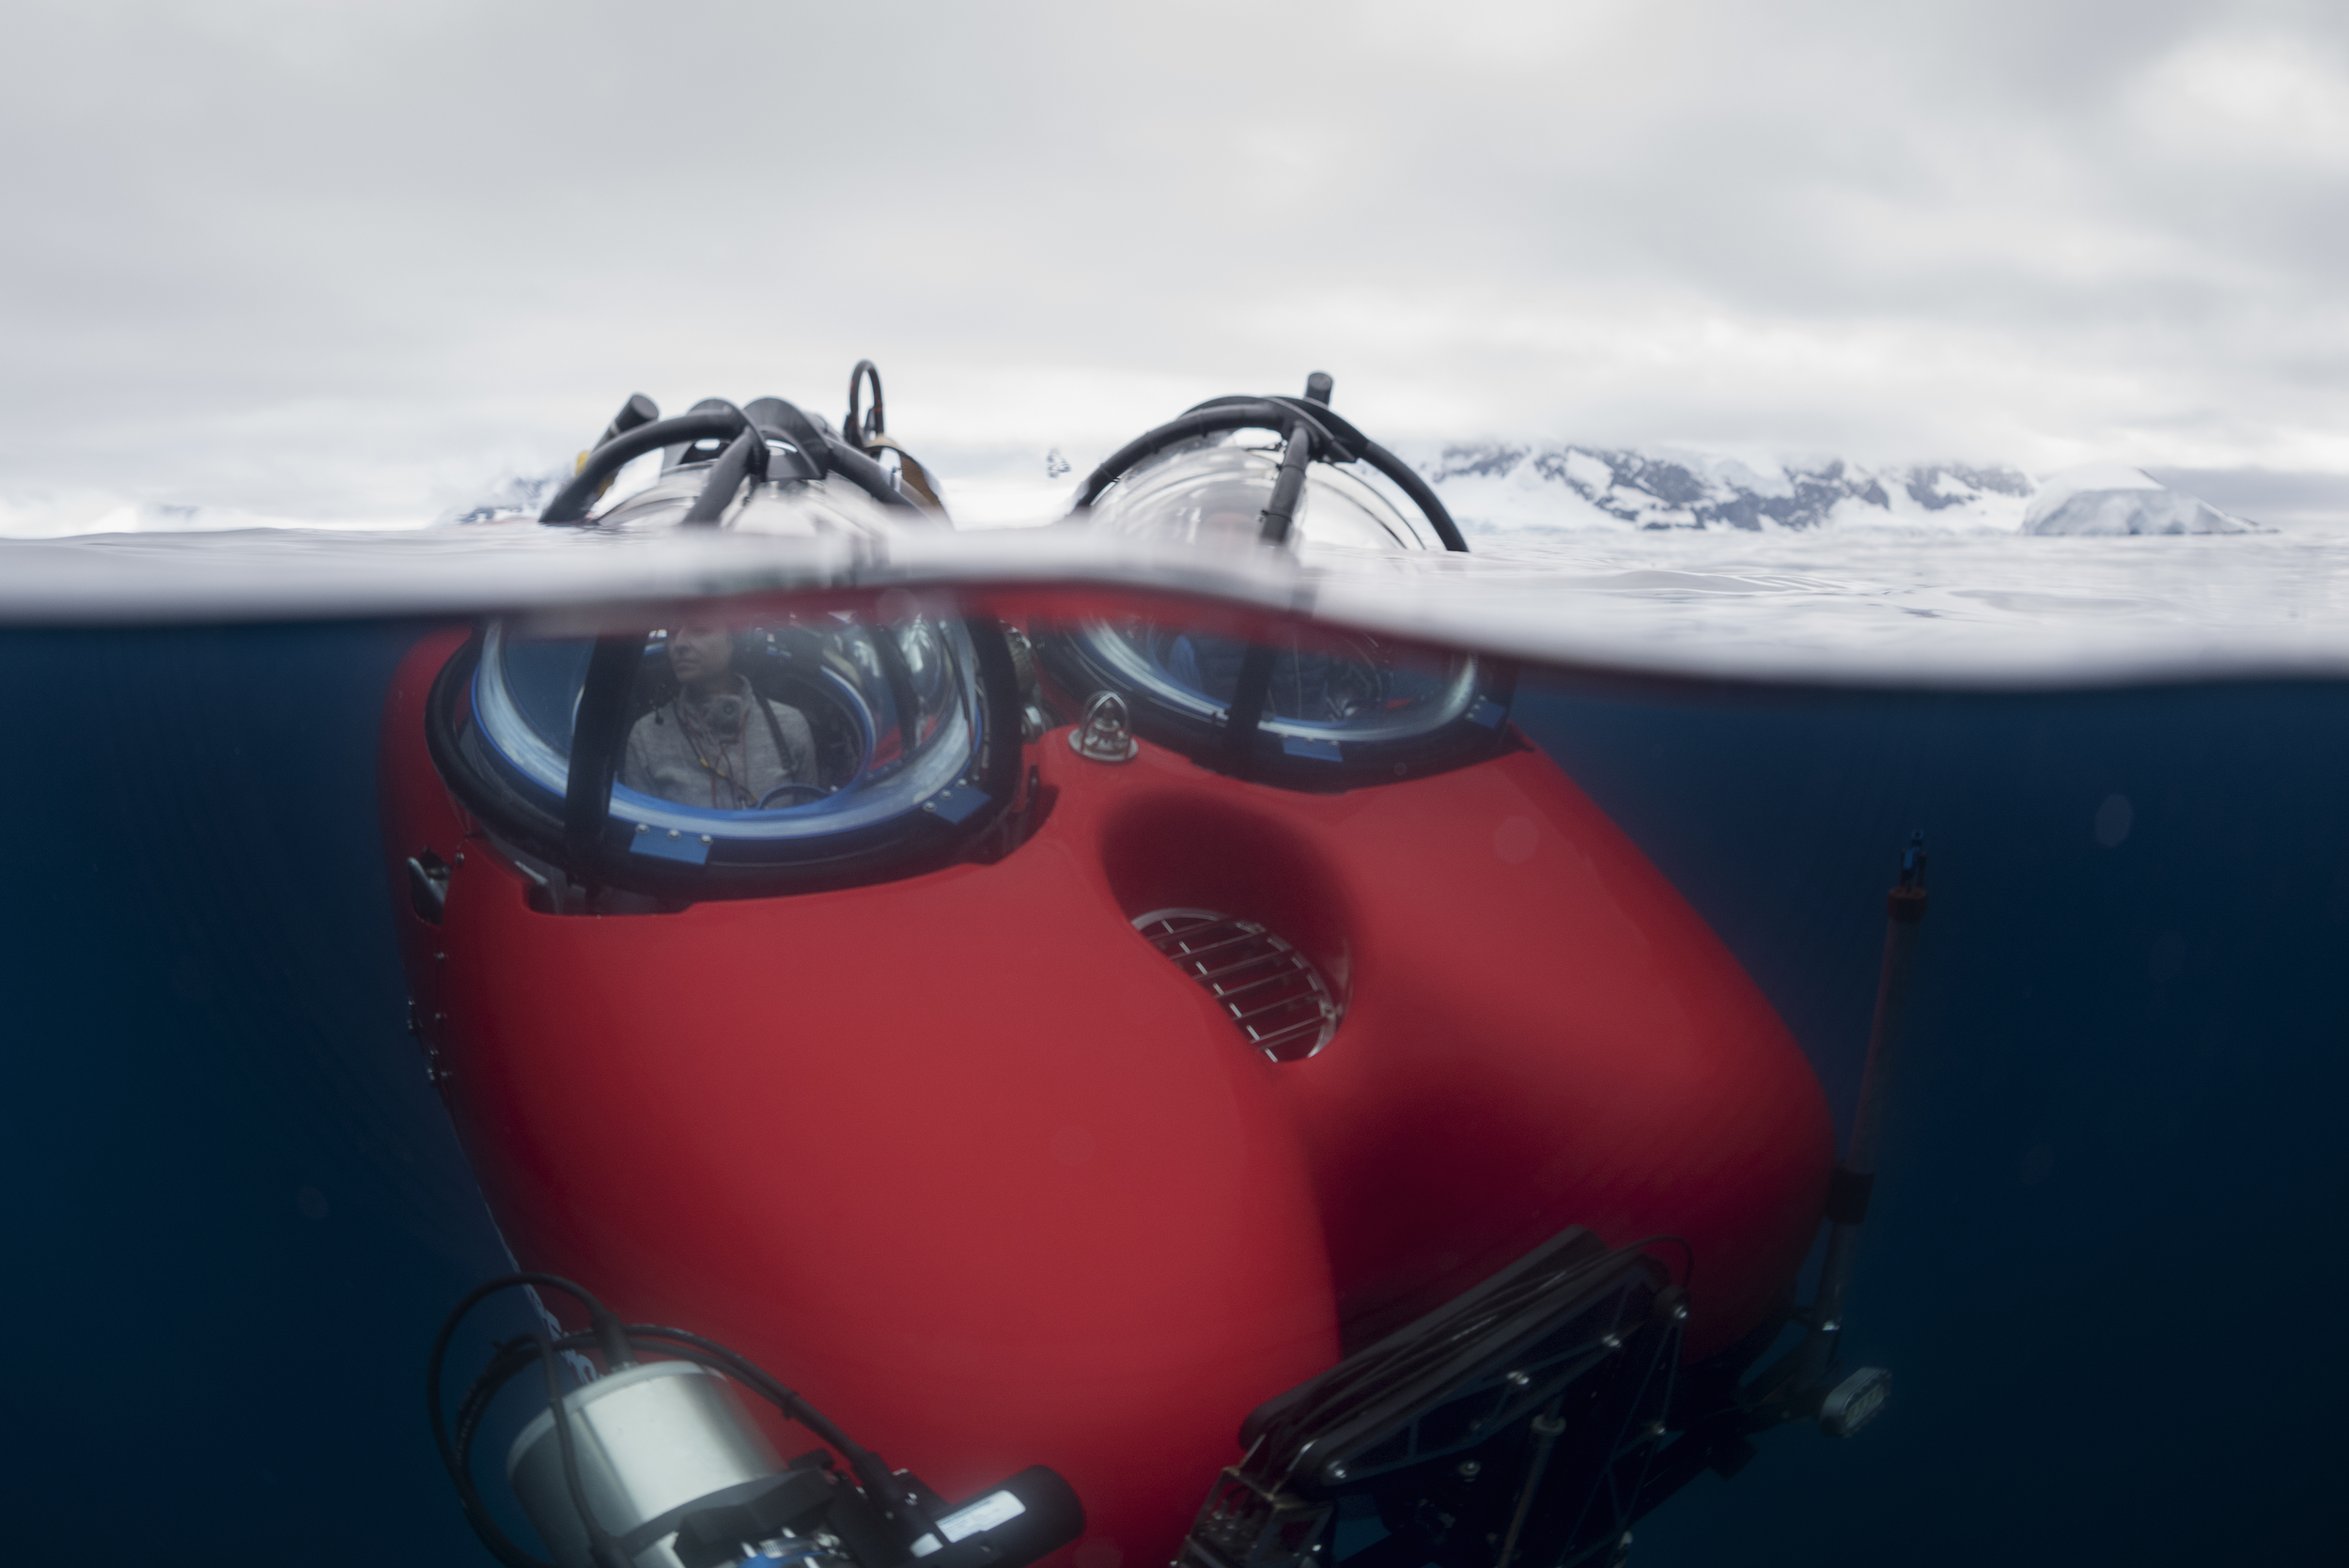 greenpeace submarine under water